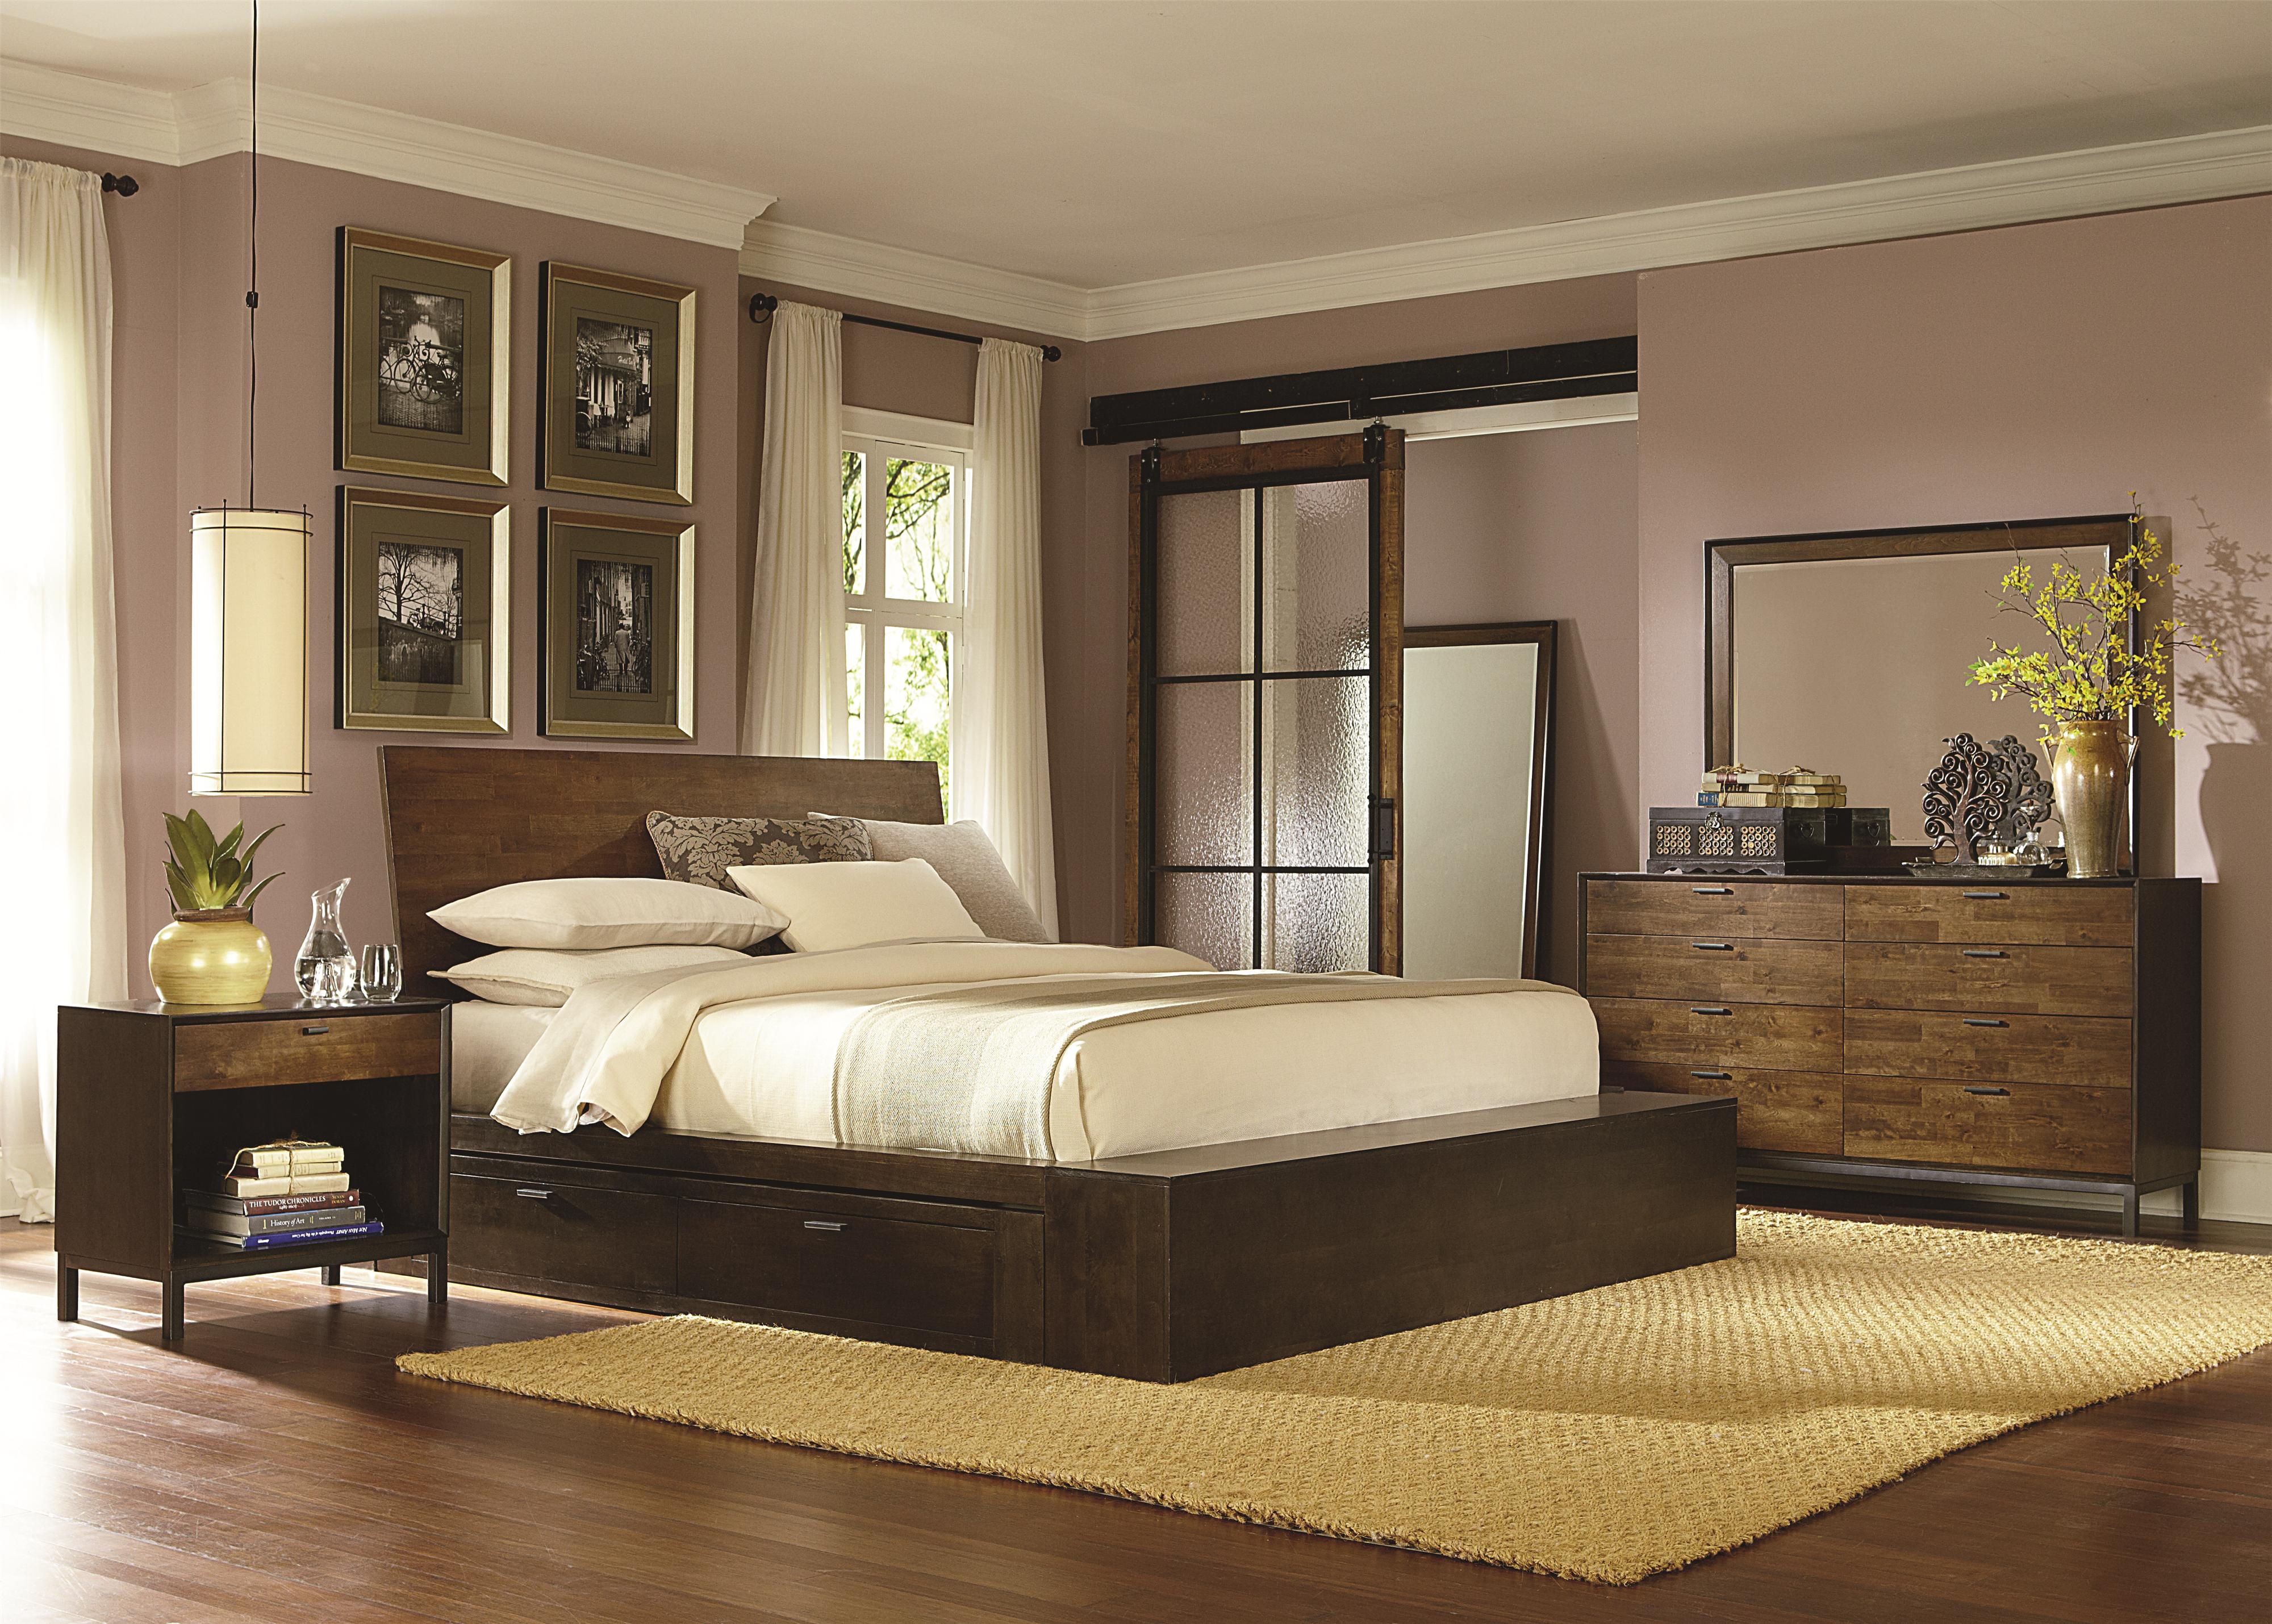 Kateri Complete Platform King Bed with Two Storage Drawers by Legacy Classic | Wolf Furniture